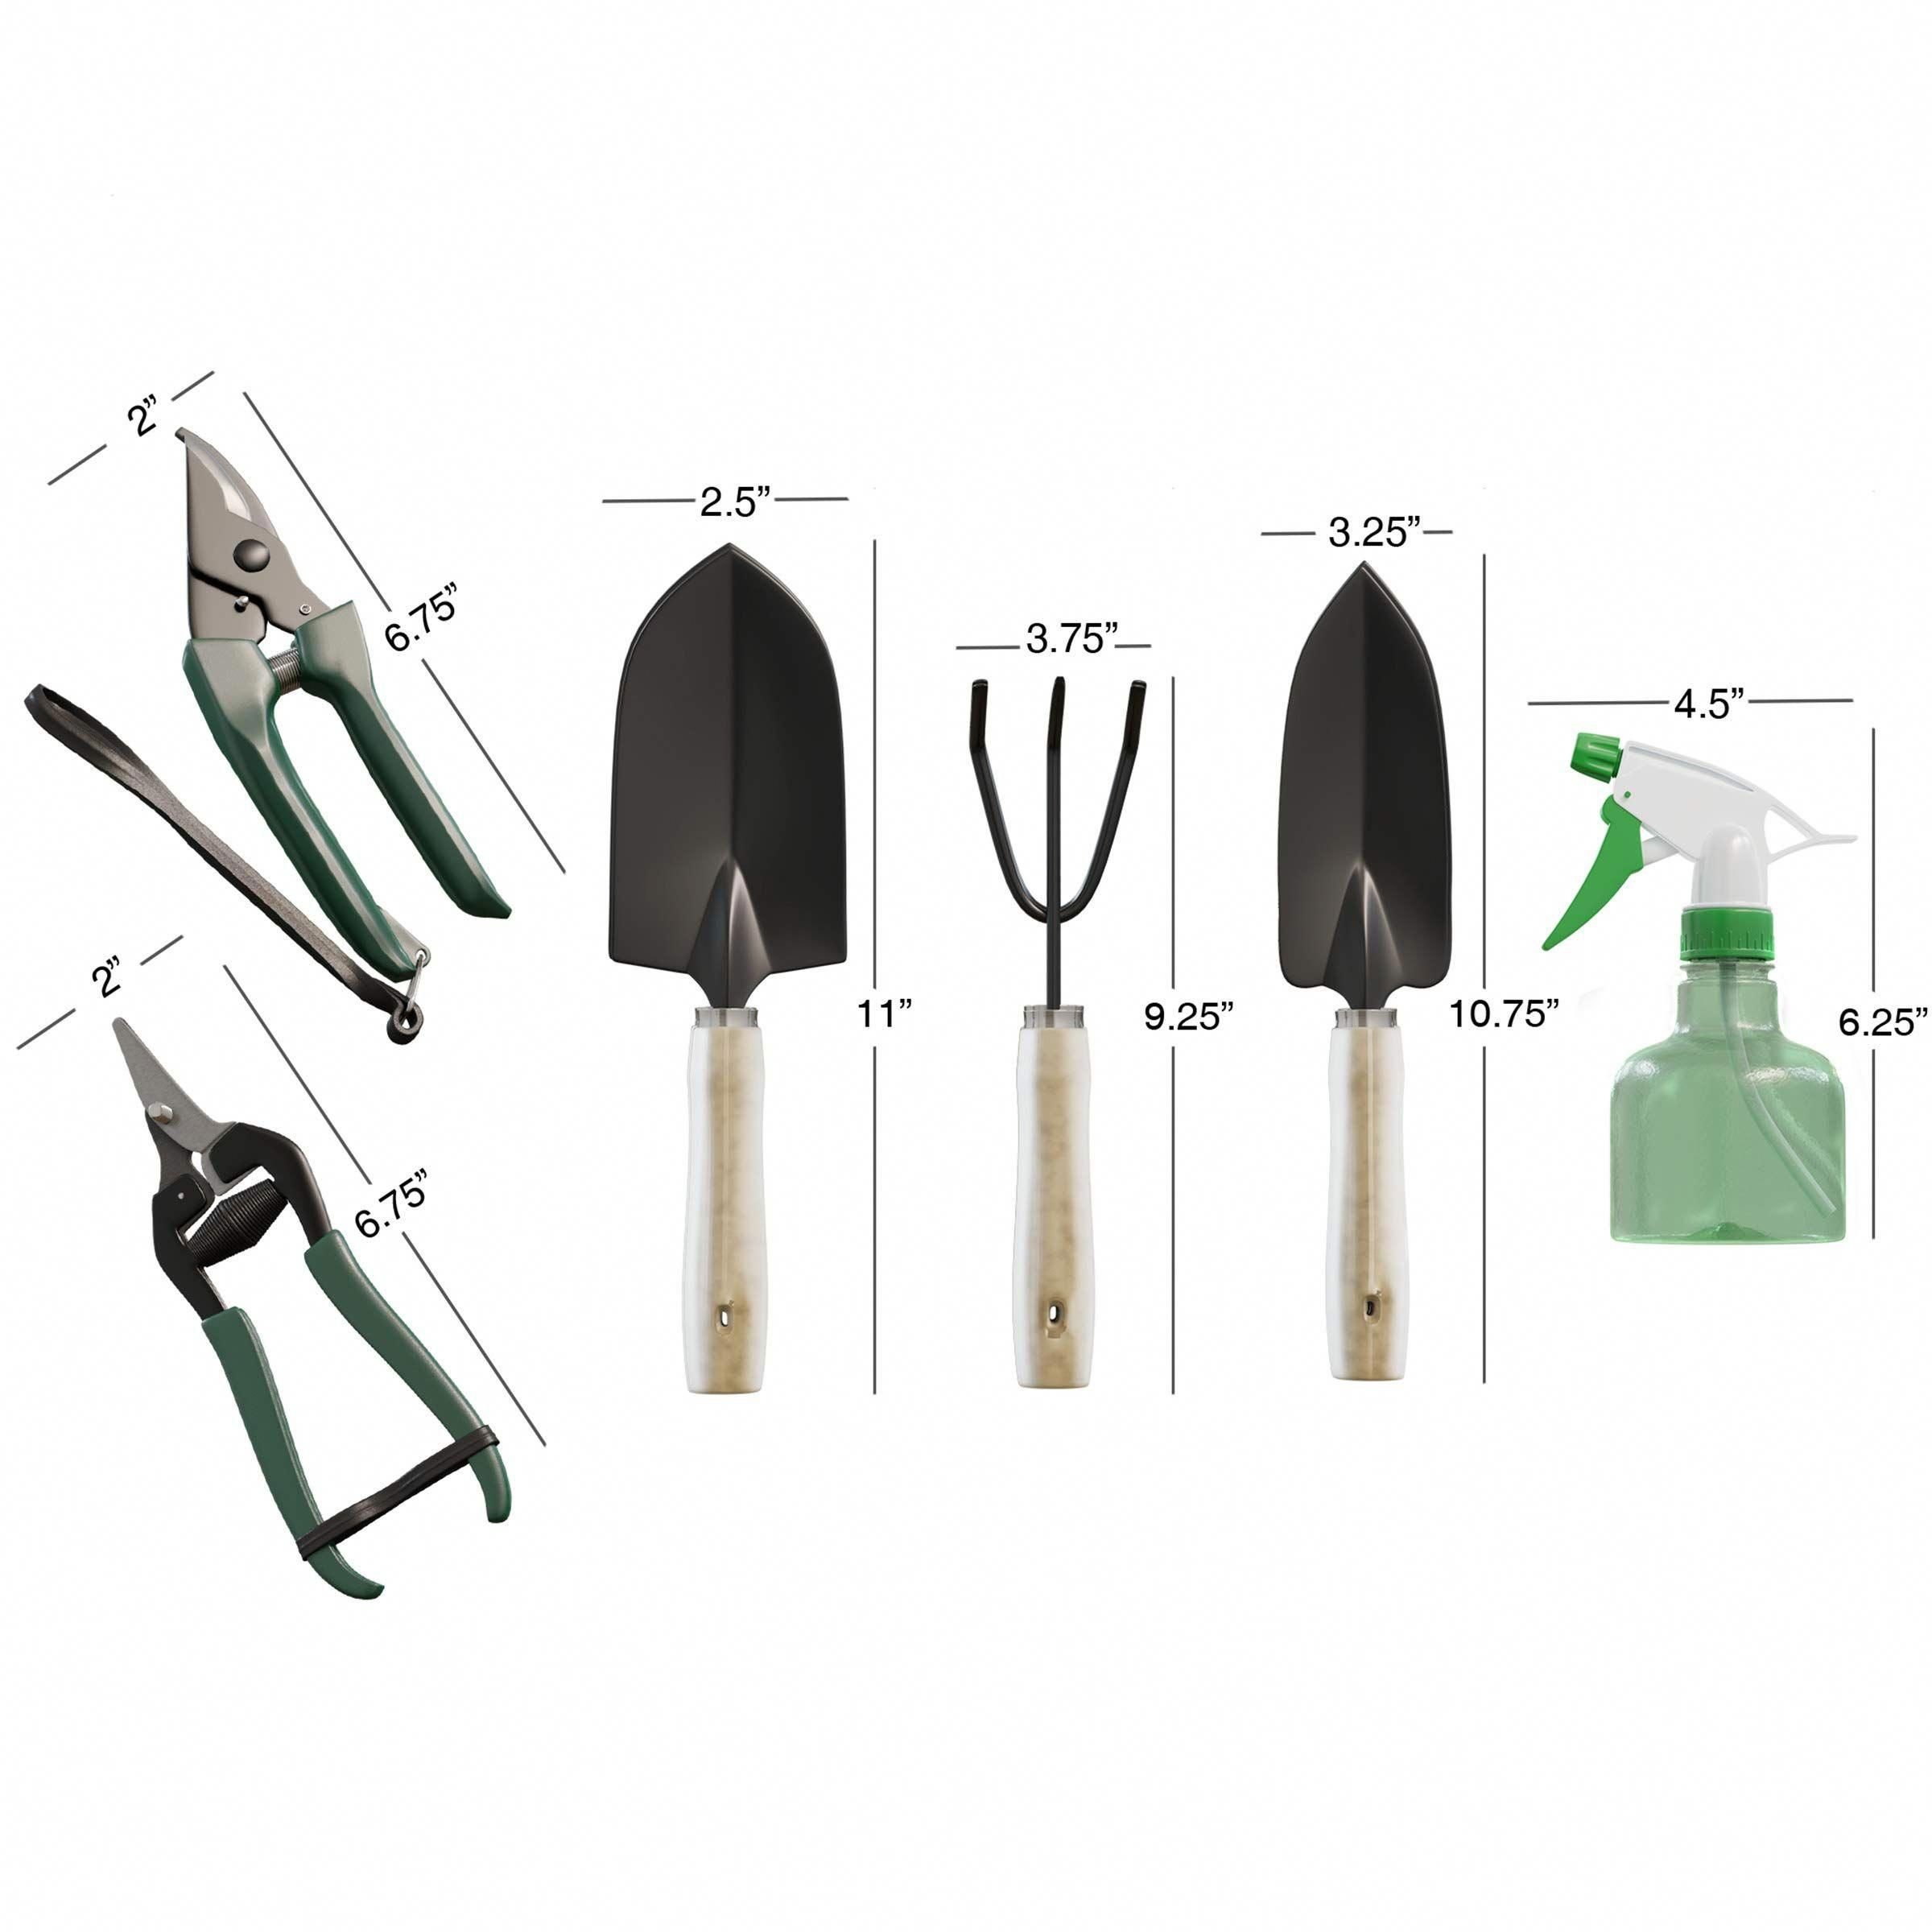 Bloom 4 Piece Gardening Tool Set